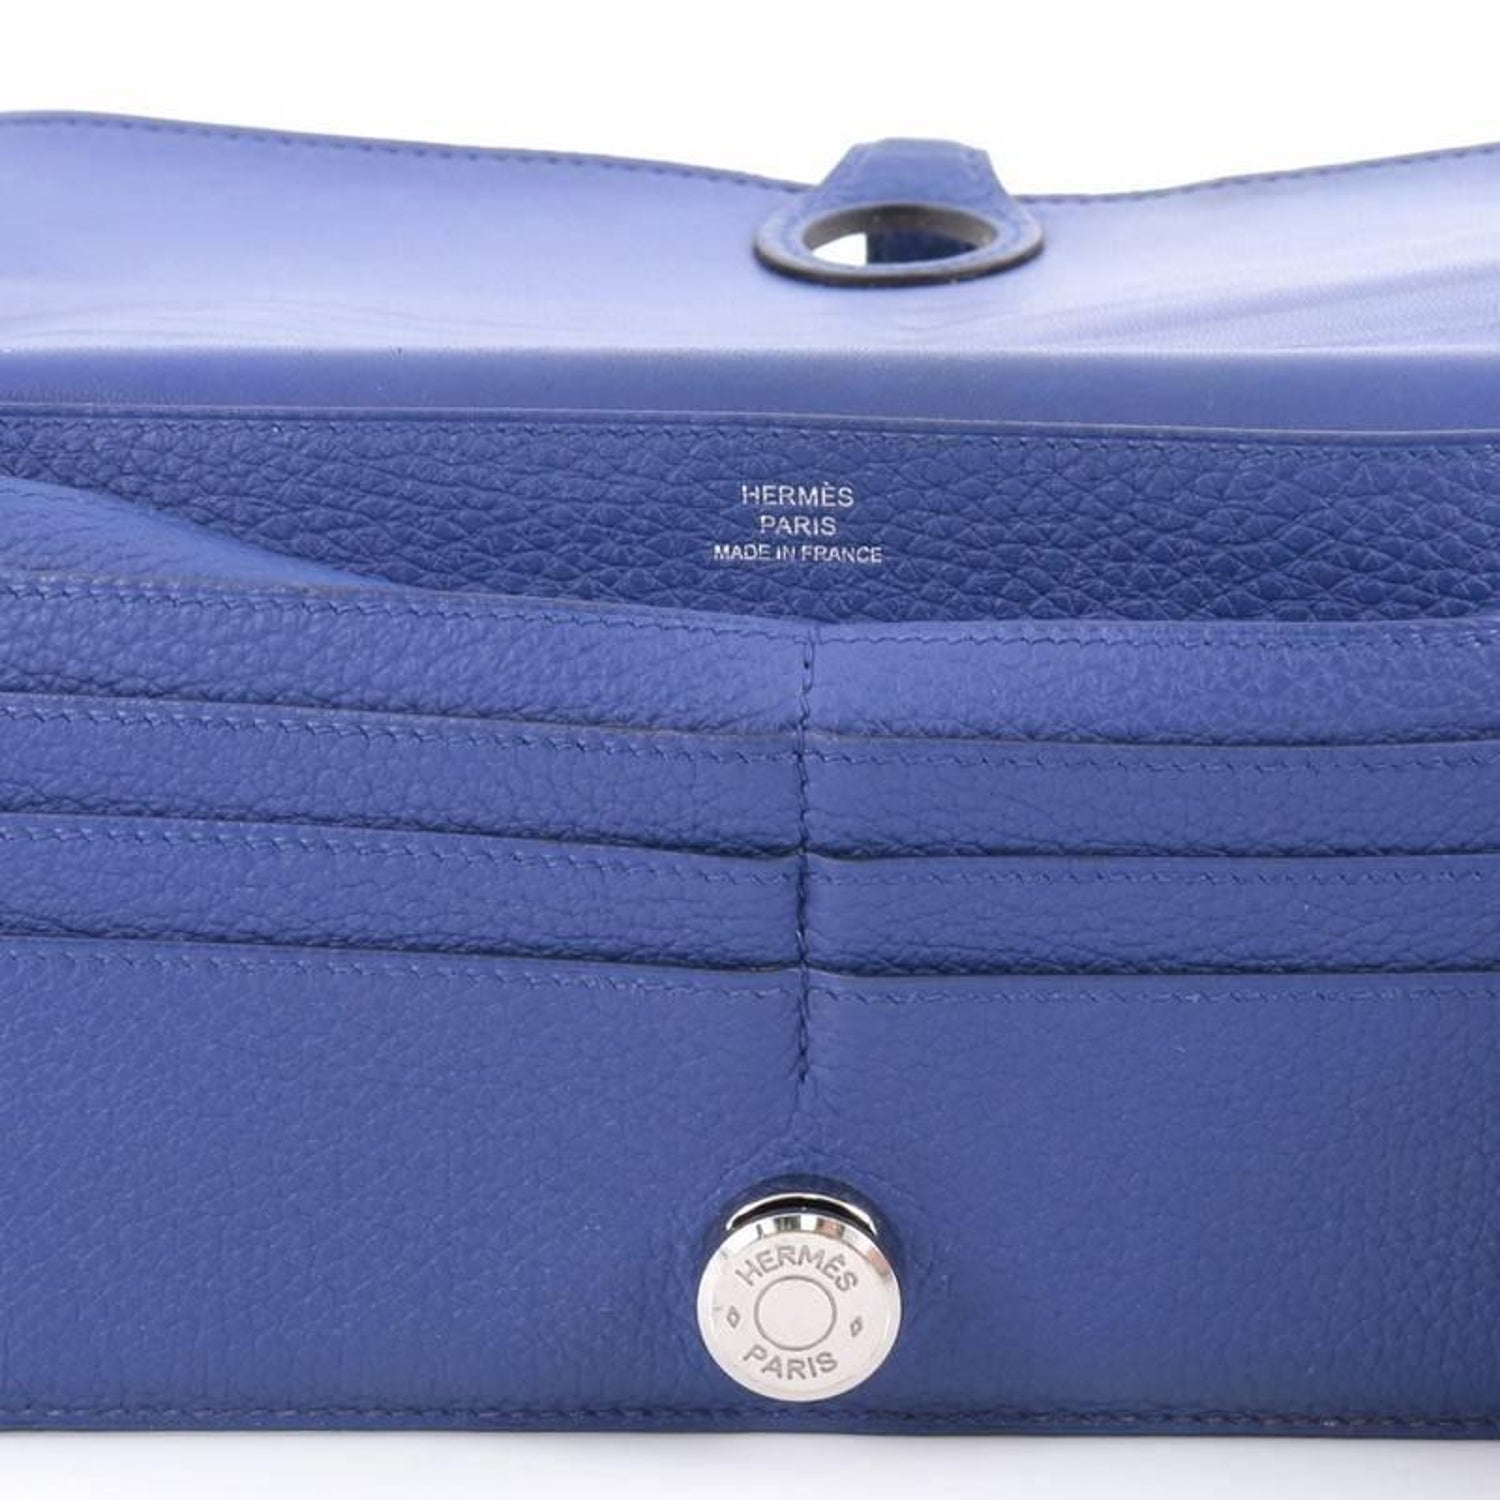 Hermes Dogon Recto Verso Wallet Leather For Sale at 1stdibs